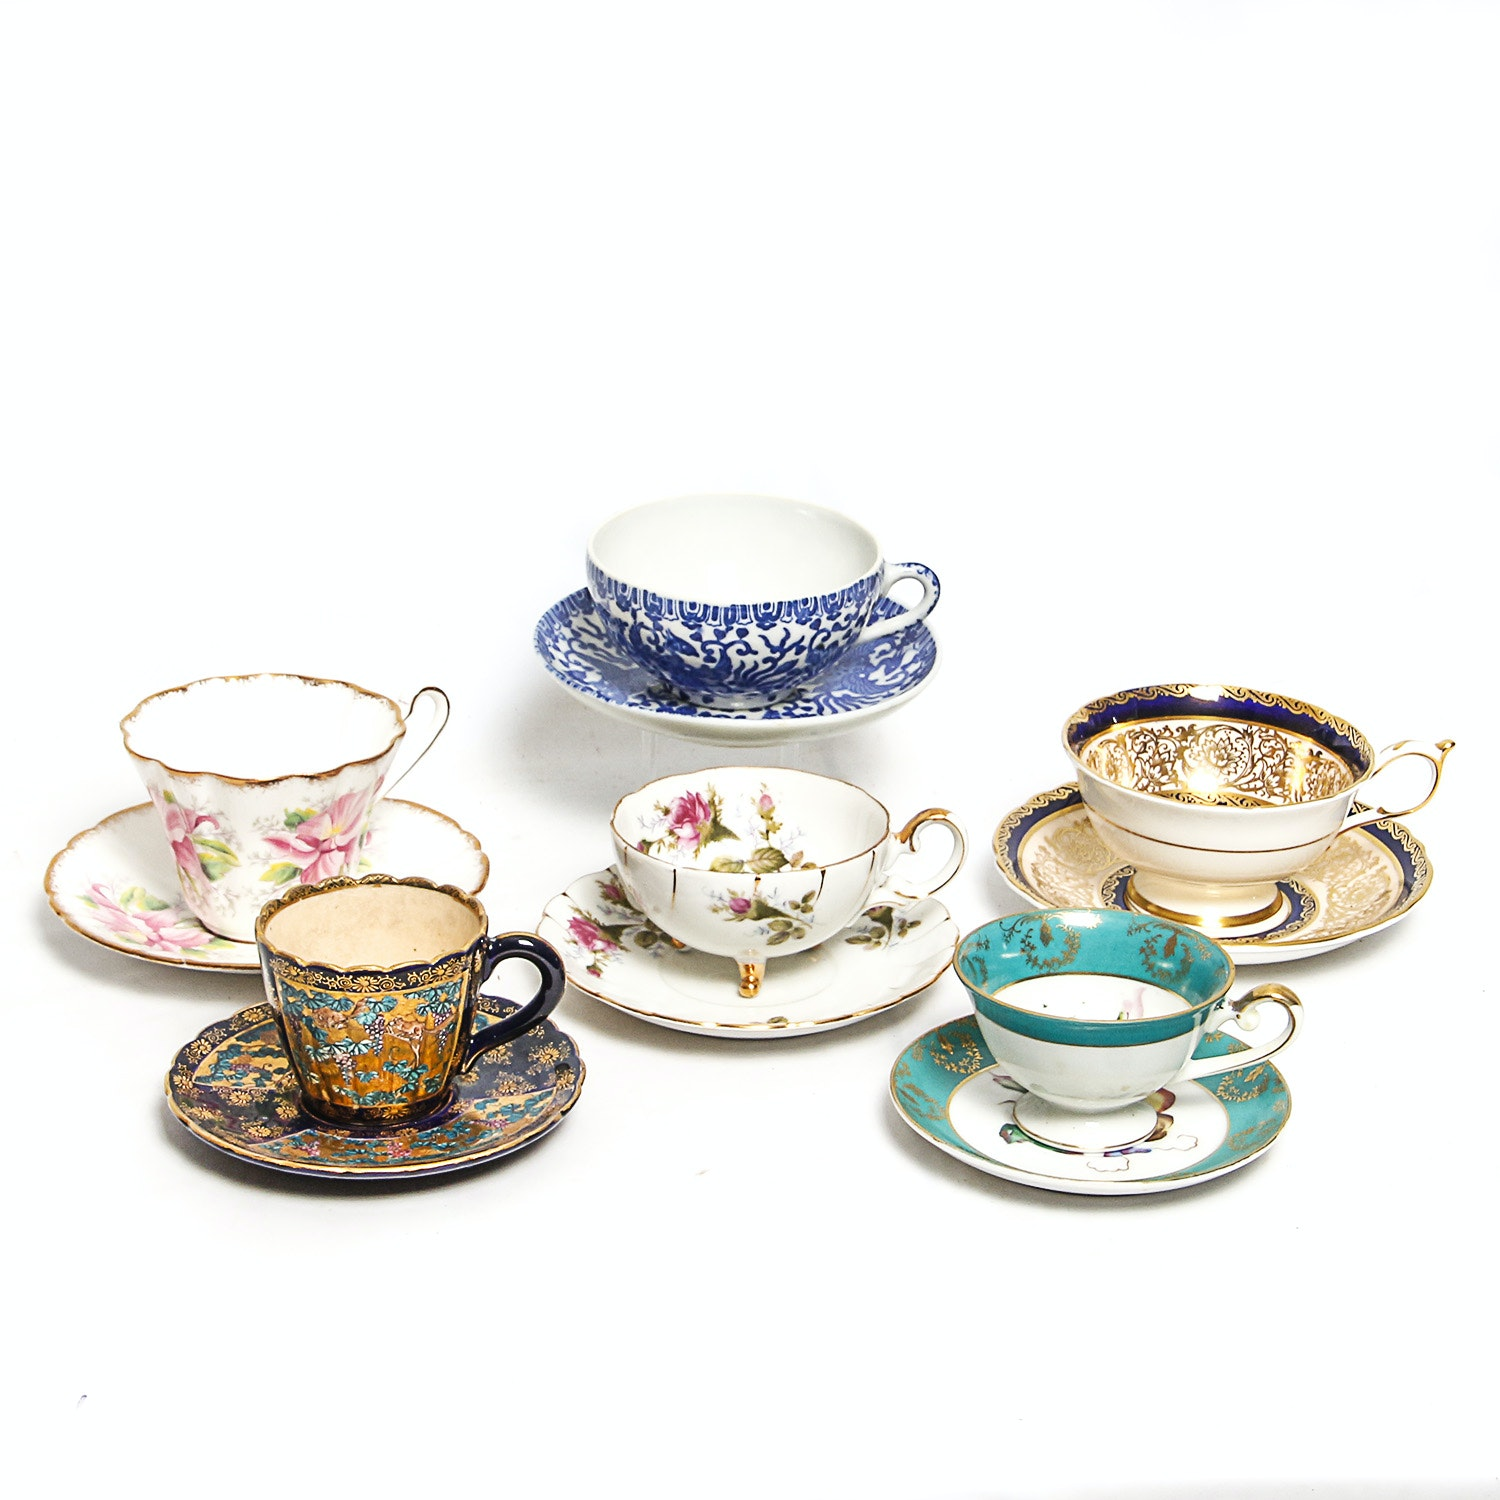 Vintage Teacups and Matching Saucers